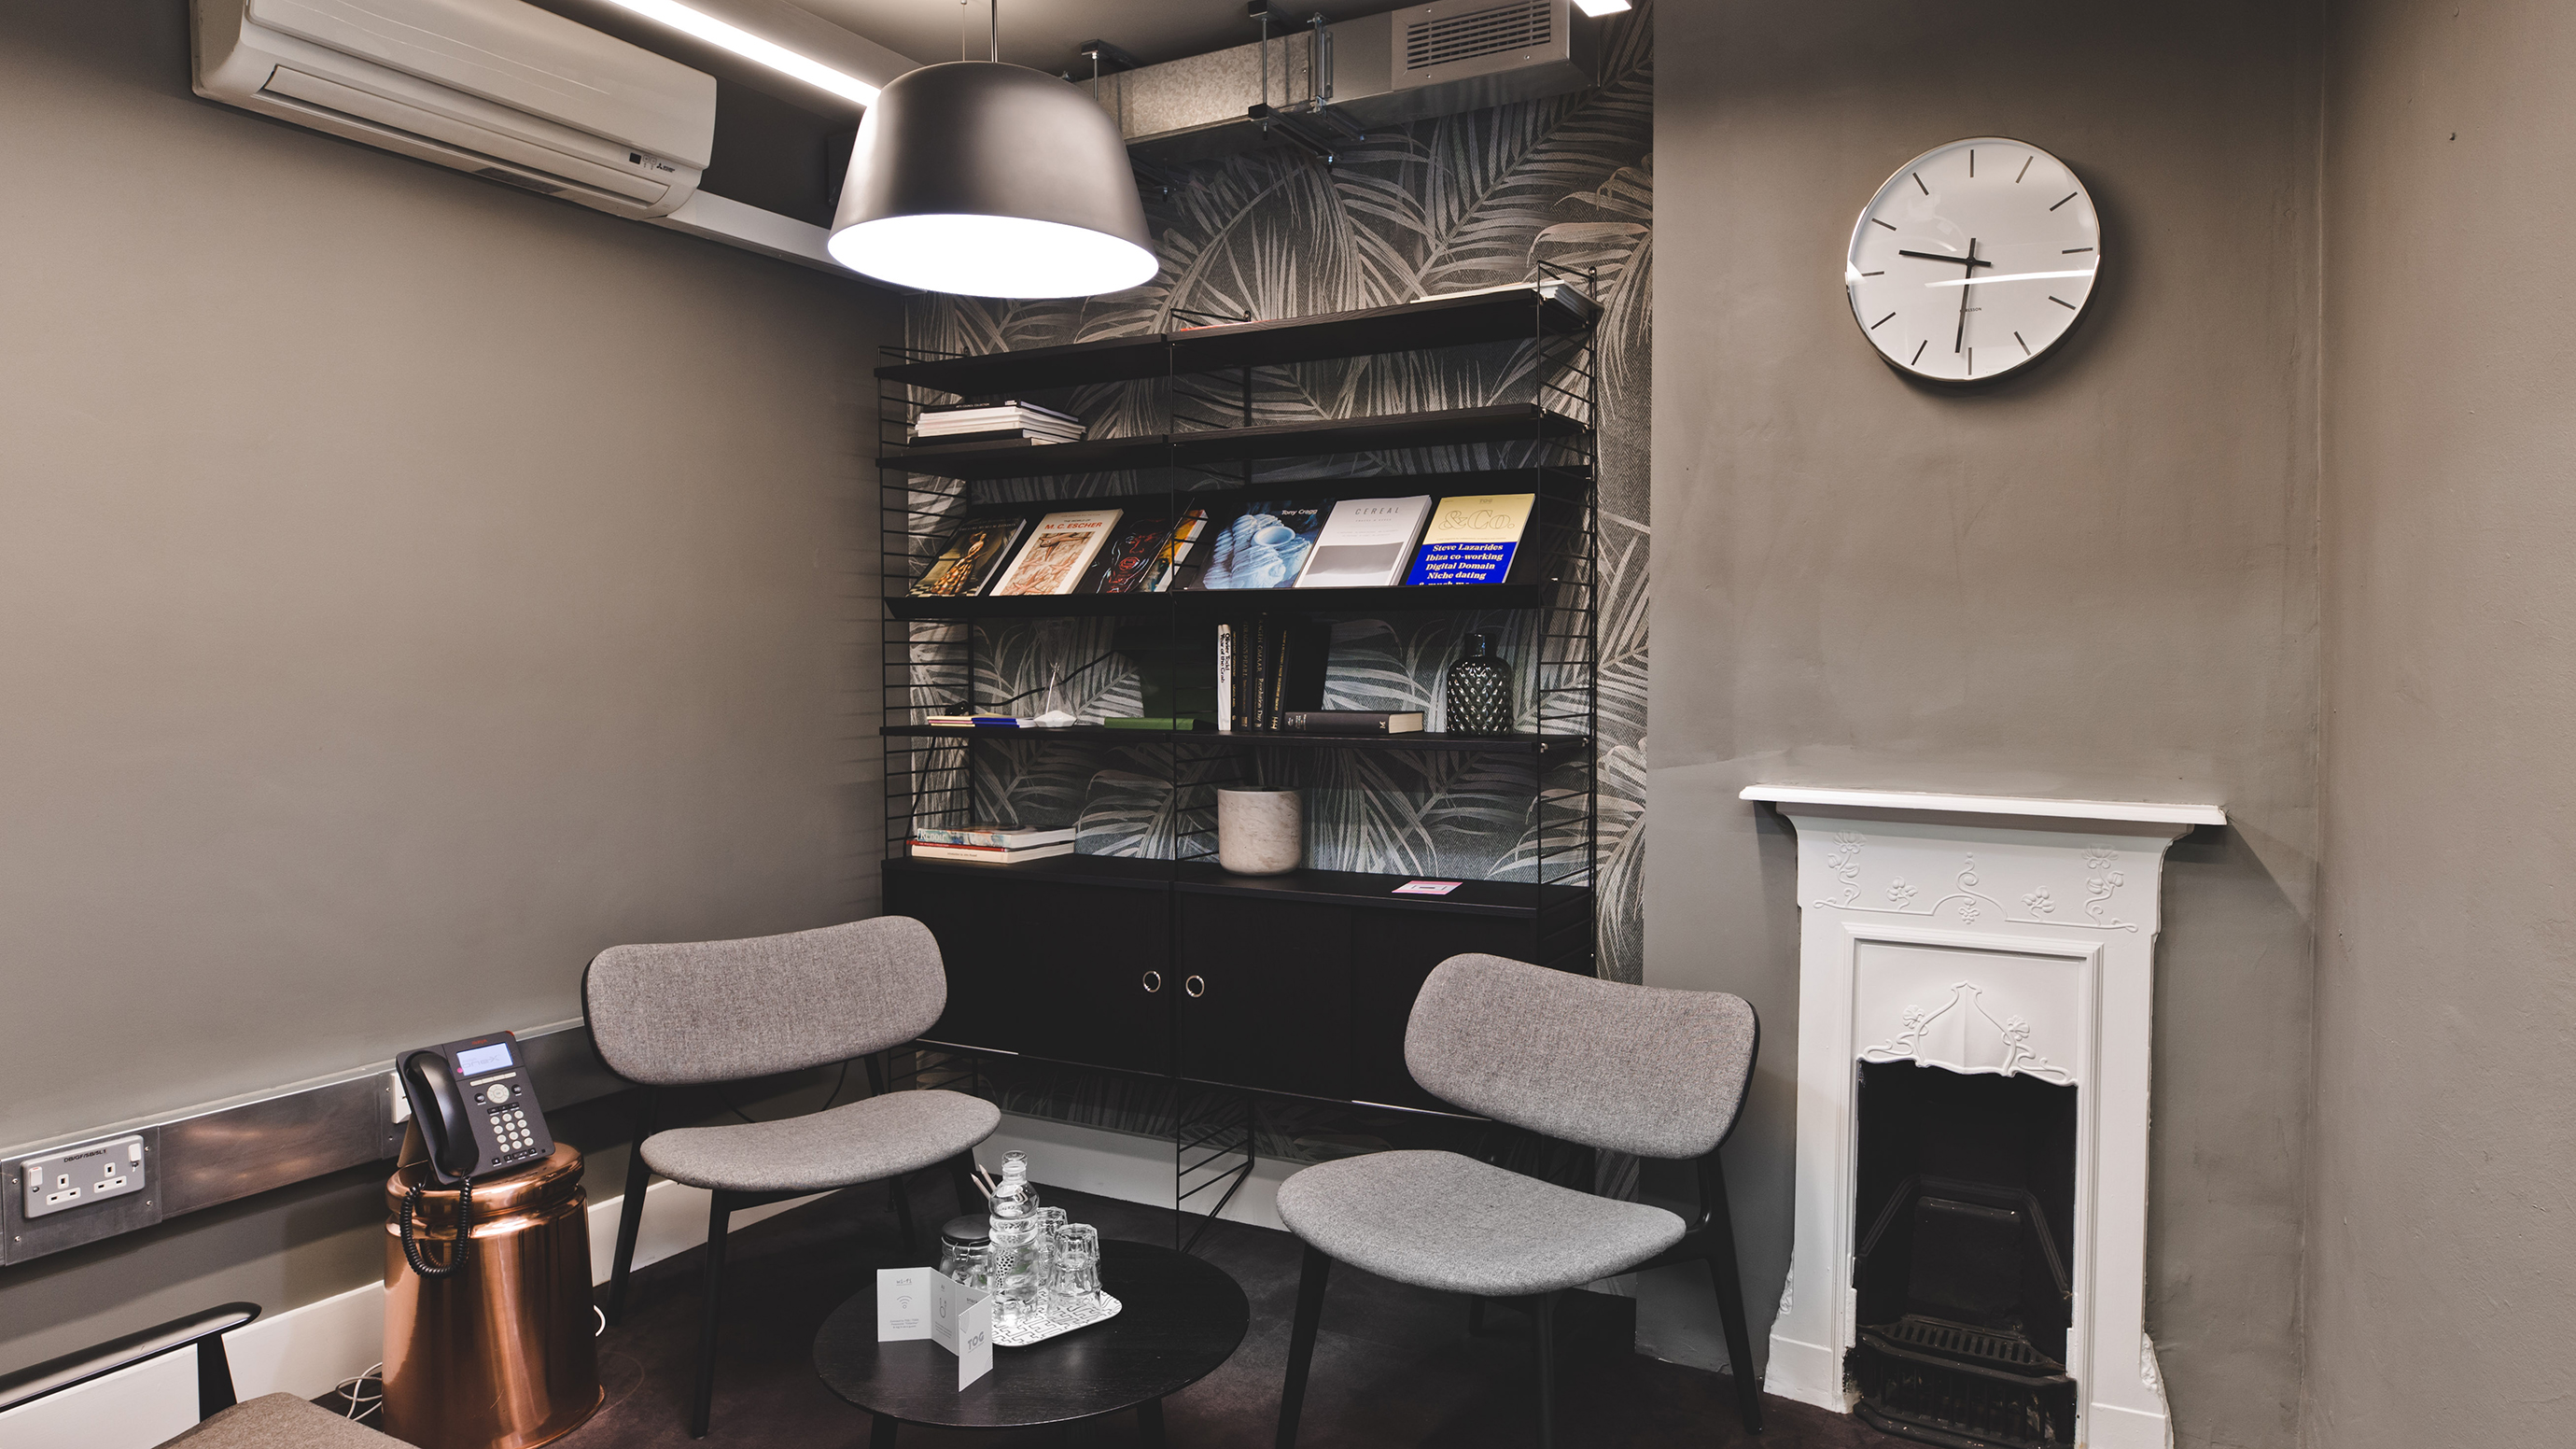 Small meeting room with grey chairs and fireplace and bookshelf at TOG building The Stanley Building London